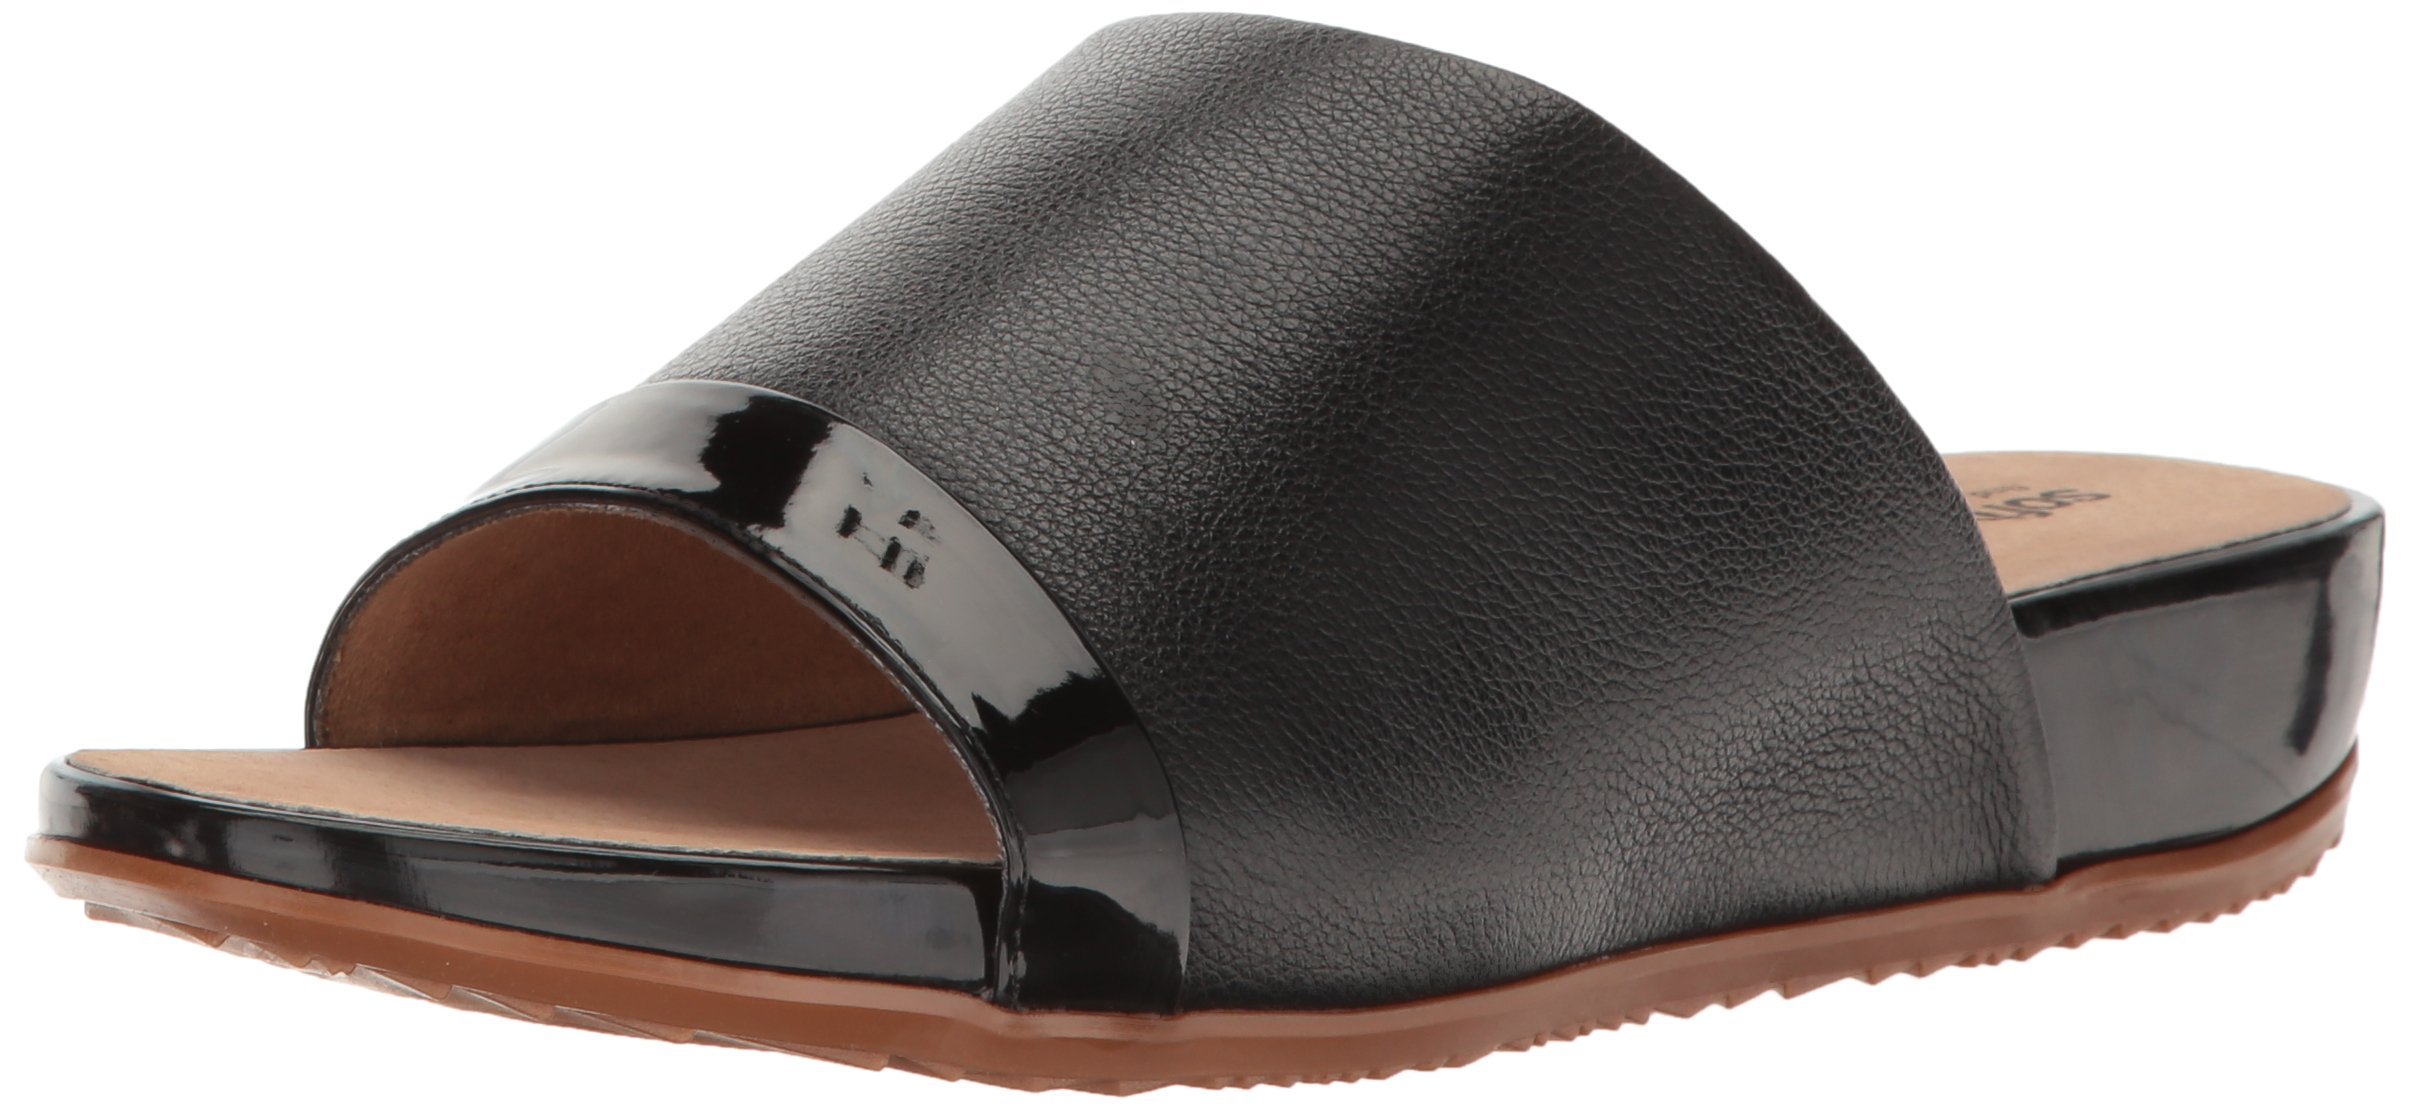 SoftWalk Women's Del Mar Wedge Slide Sandal, Black, 9 M US